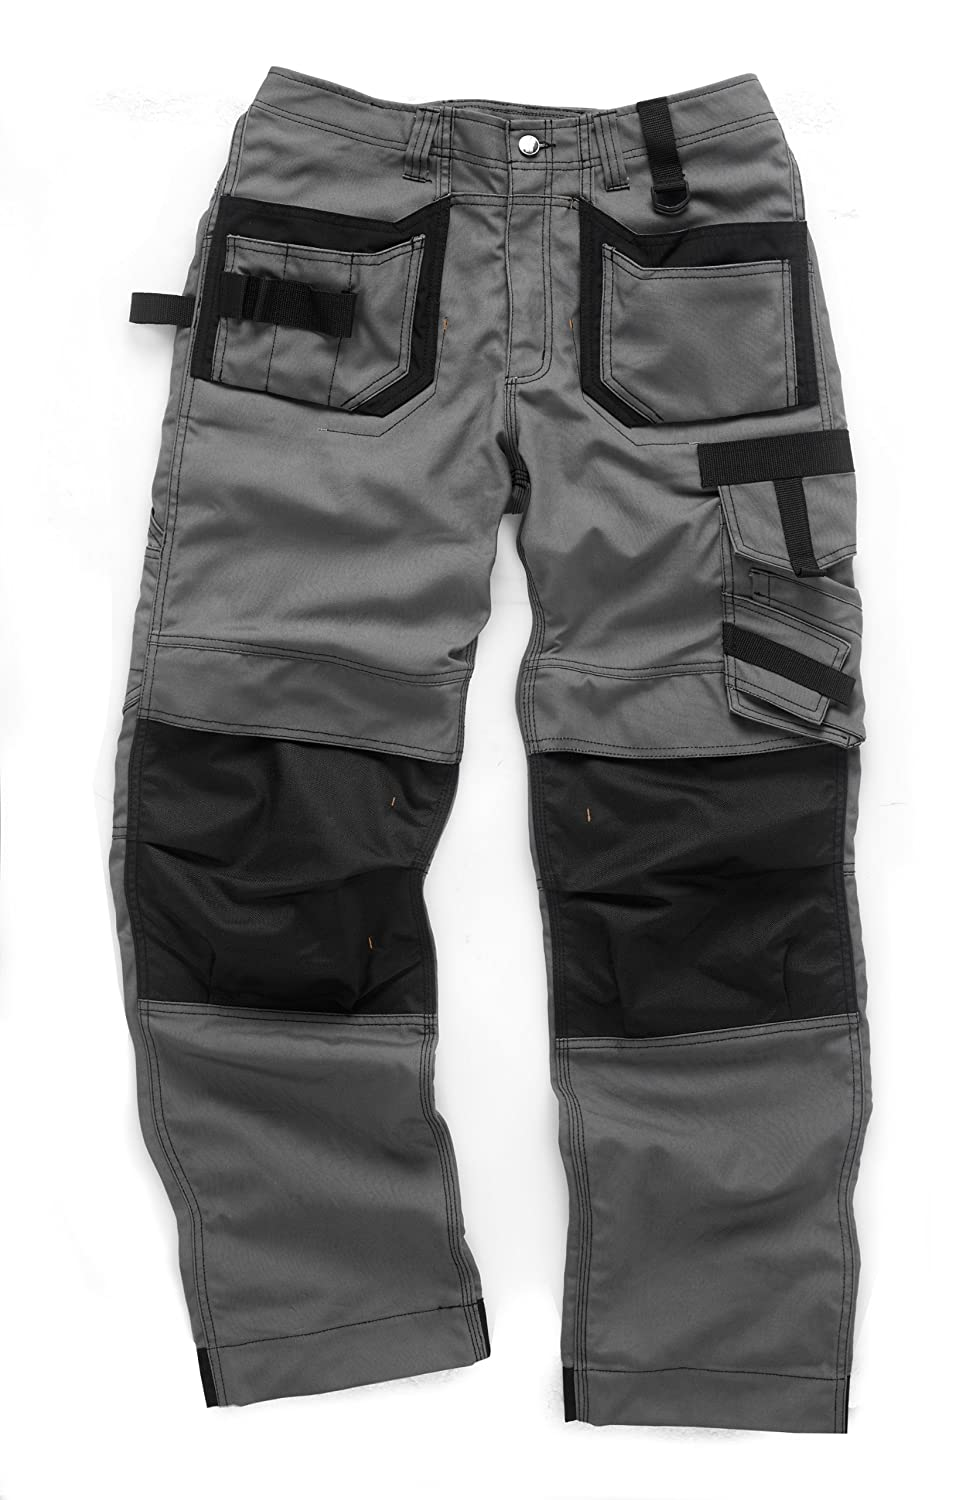 Scruffs Pro Trouser 2012 with 36-inch Waist/ 33-inch Leg - Grey